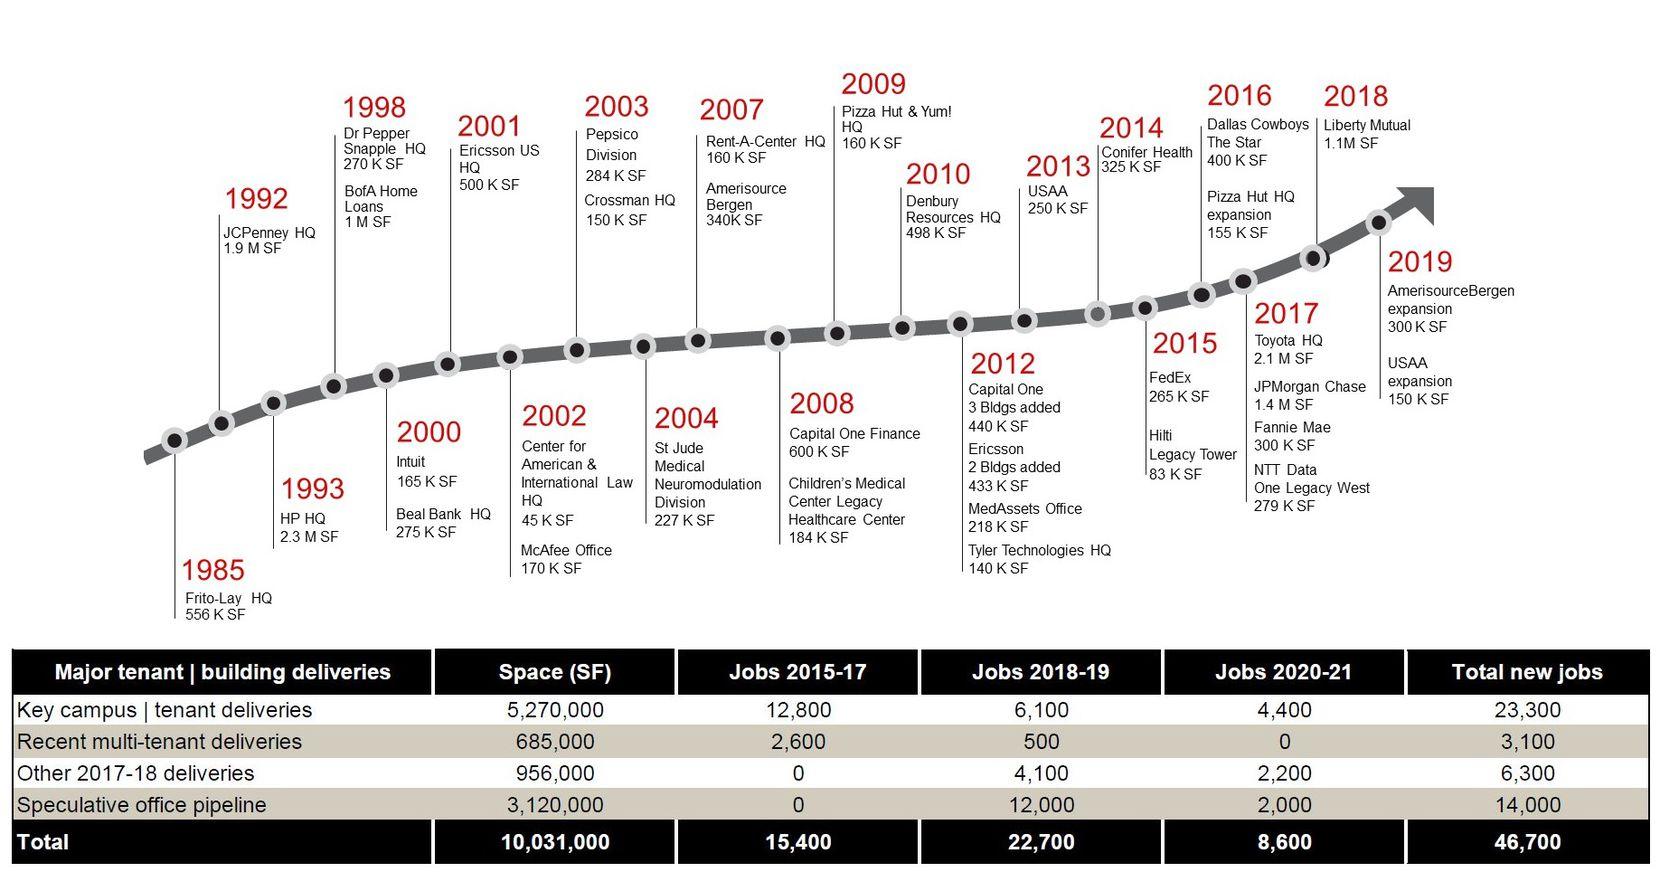 JLL's numbers for the Legacy area and south Frisco go back to the 1980s.